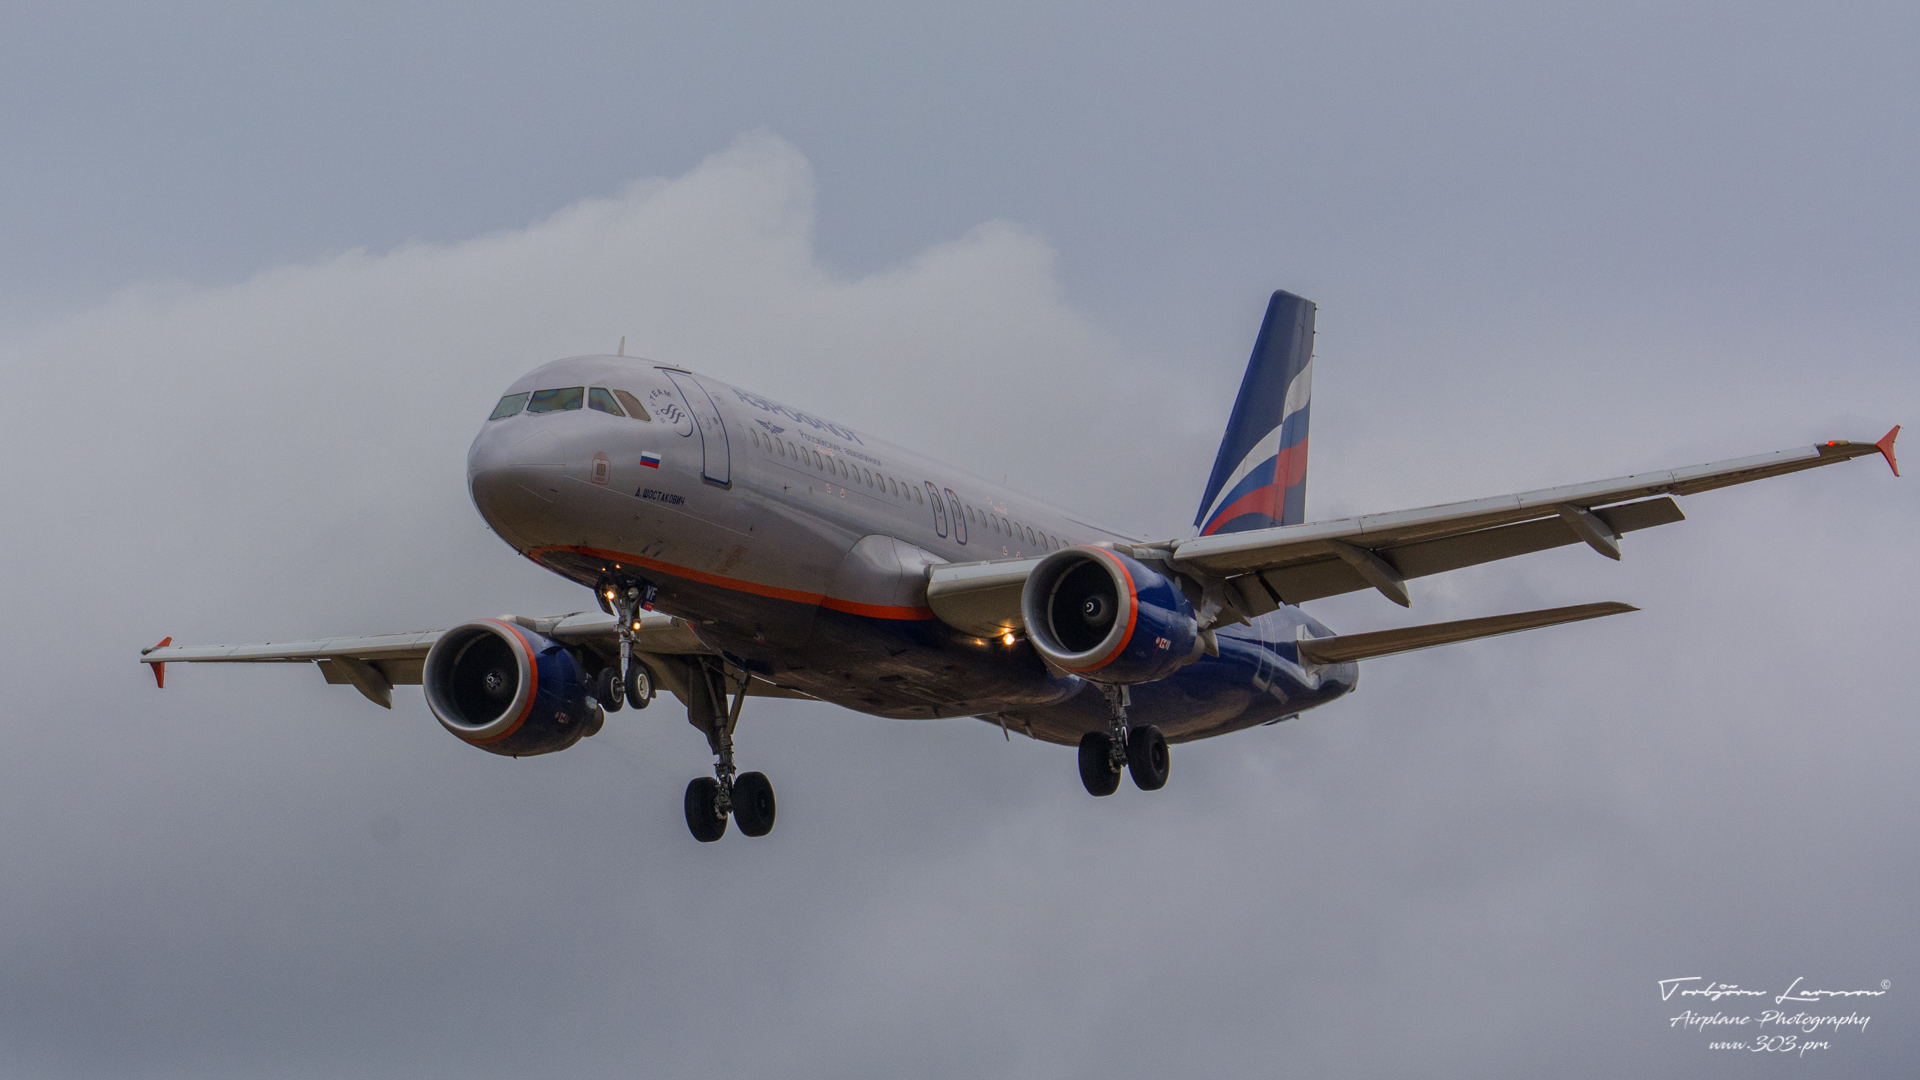 TBE_6652-Airbus A320-214 - Aeroflot Russian Airlines (VP-BWF)